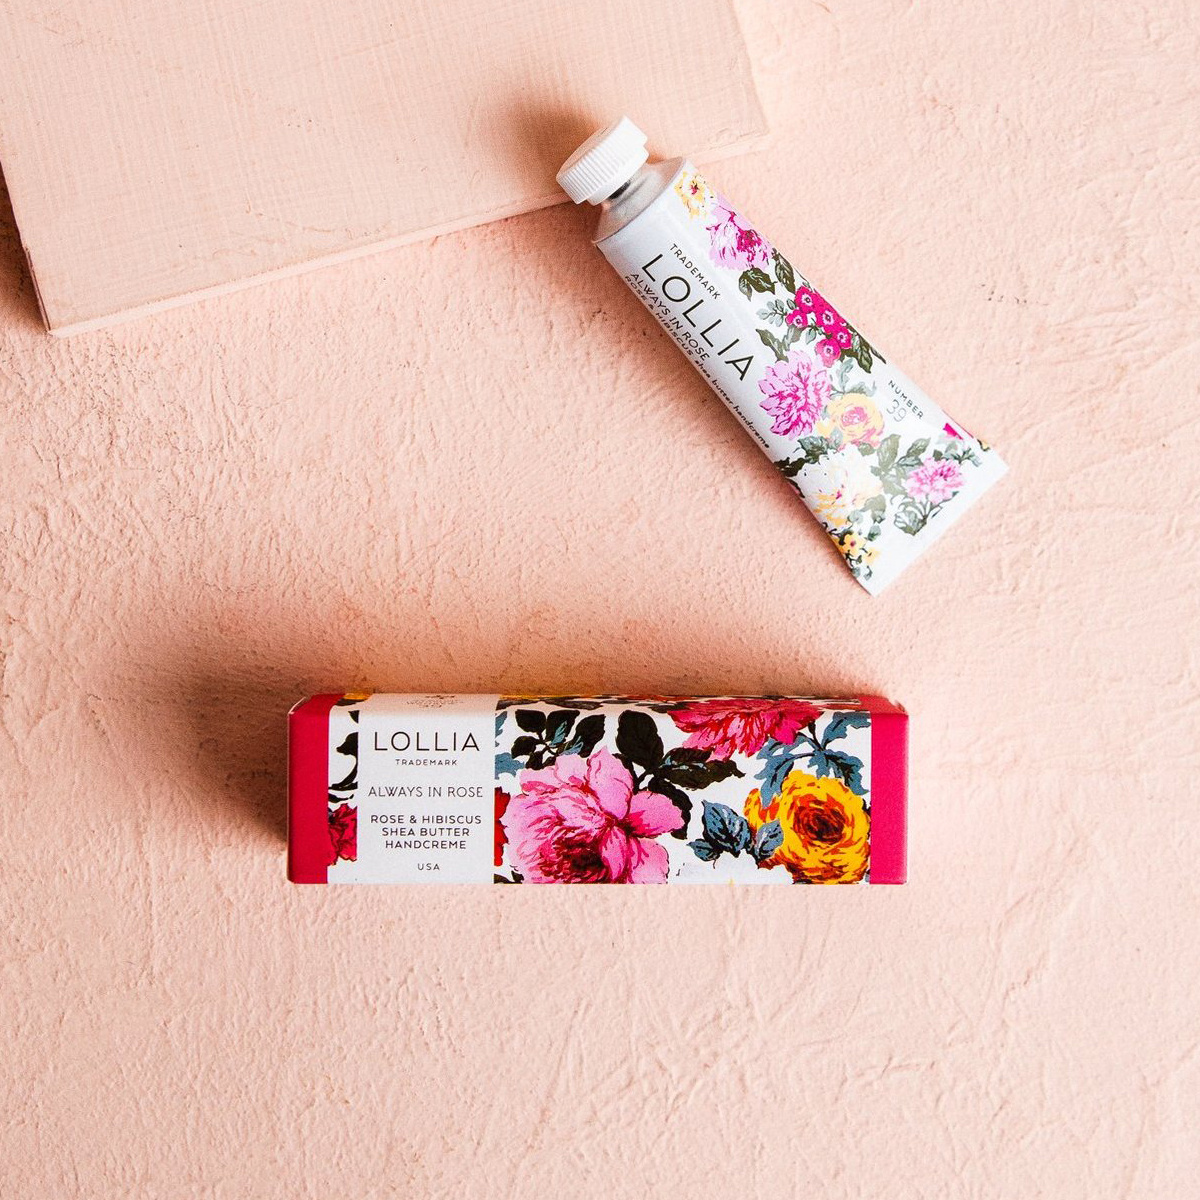 Lollia - LO Lollia Always in Rose Petie Treat Handcreme